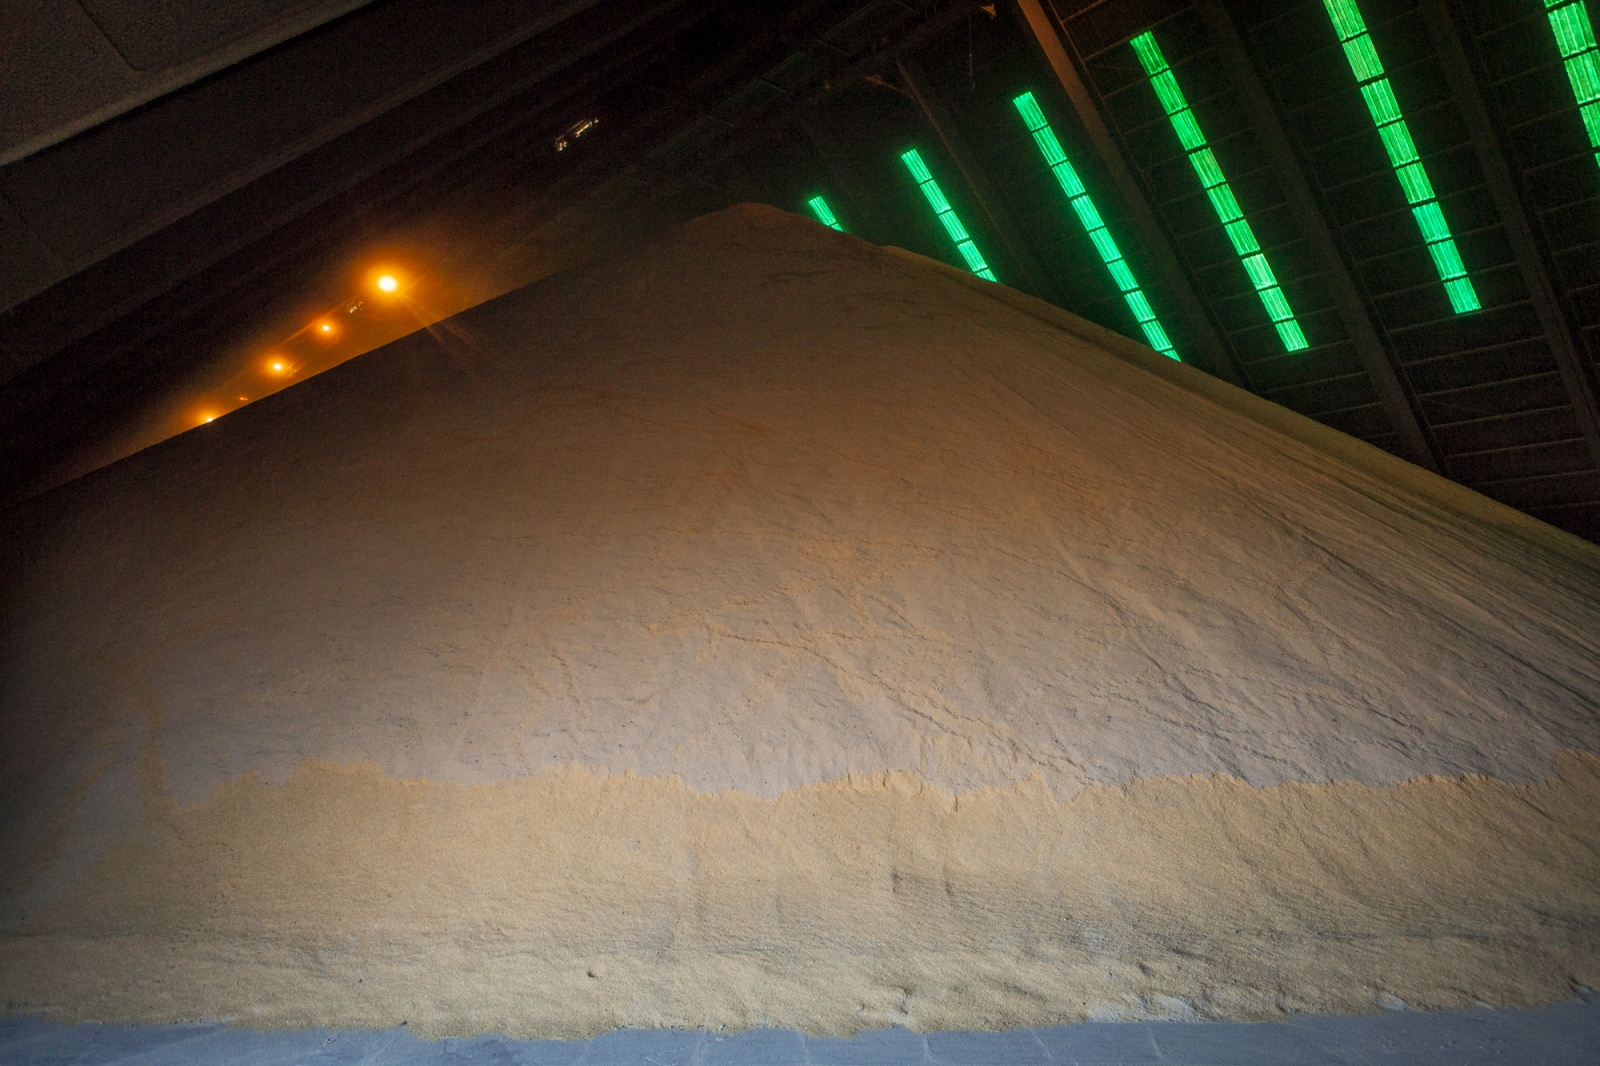 Soybeans are stored in cells before they are crushed at processing plant in Terminal 6 of the General San Martín Port, San Lorenzo. There are 15 cells and 15 silos in the port with a storage capacity of 1,6 million tons. On average per day 8 boats discharge their content in the port, corresponding to 14,000 tons. Terminal 6 is the largest of its kind in South America where 80,000 tons per day are received by trucks, trains and boats. The grains are then process at the plant located at the port and then shipped worldwide.